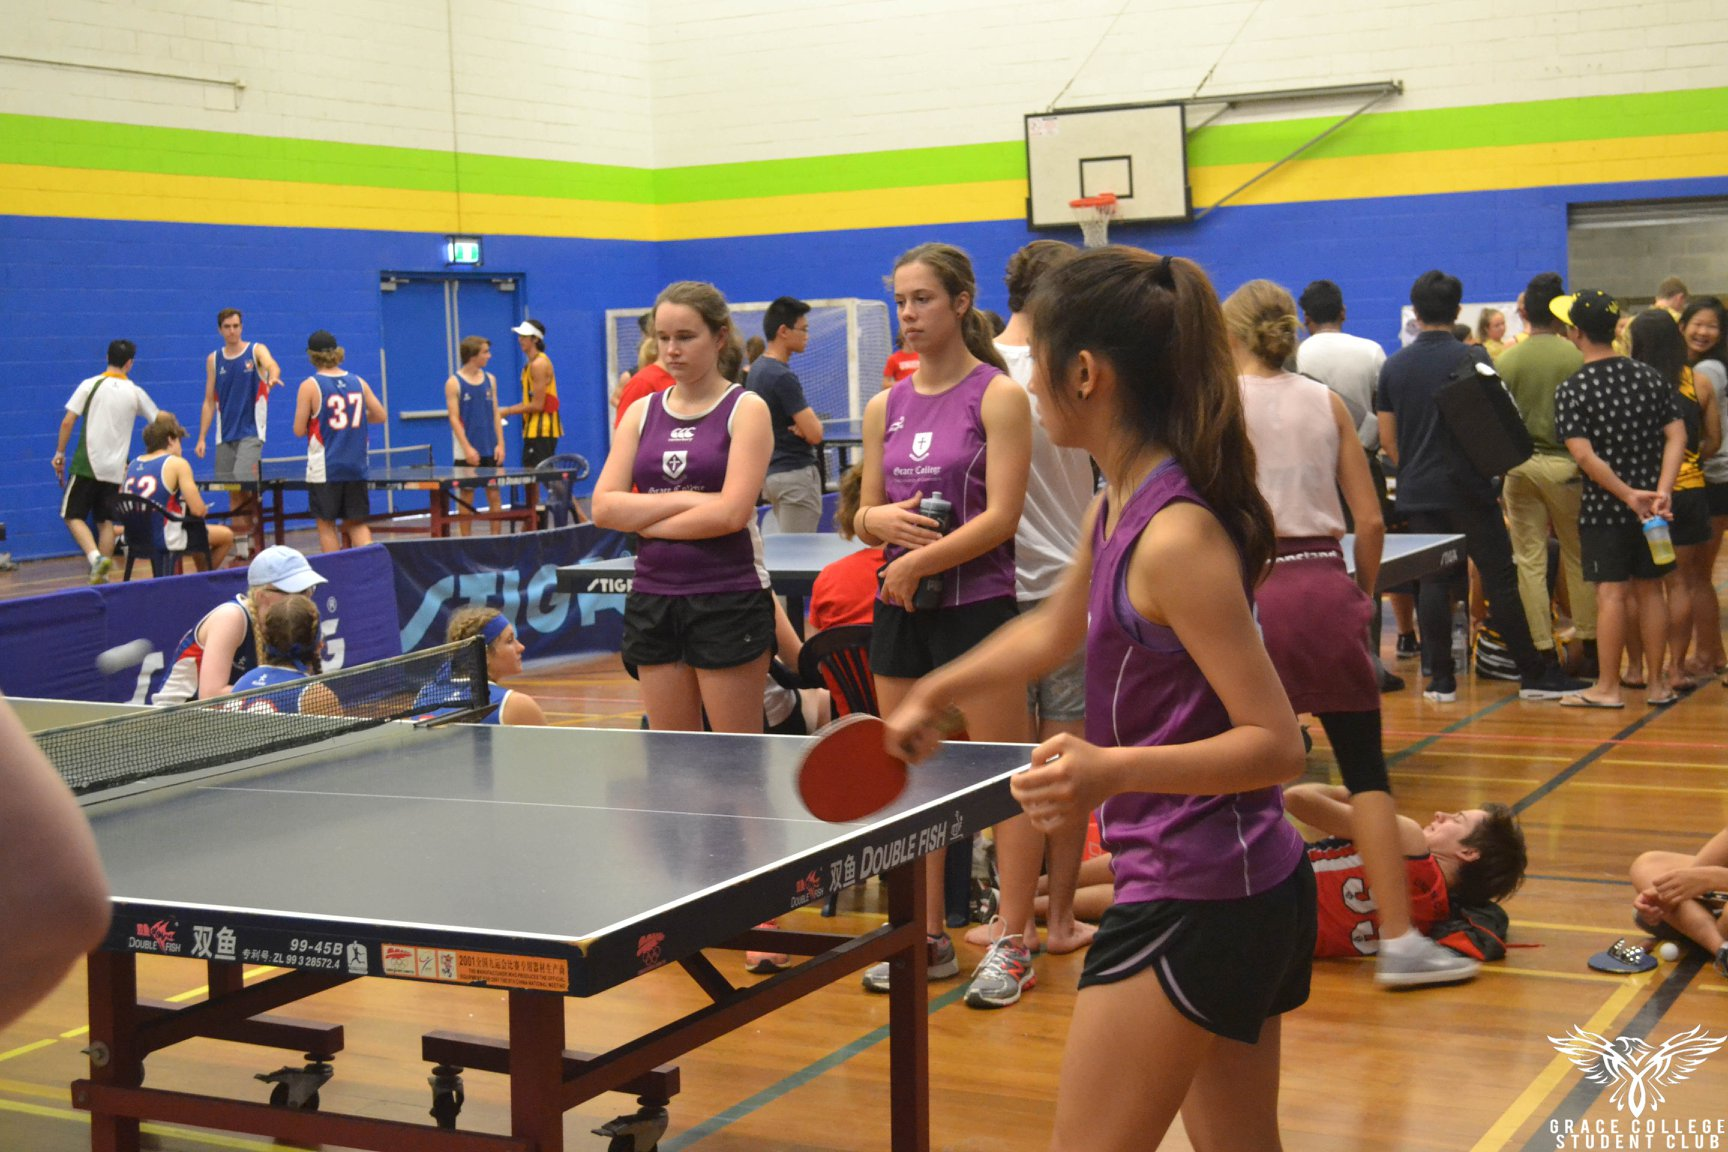 Playing table tennis watched by supporters